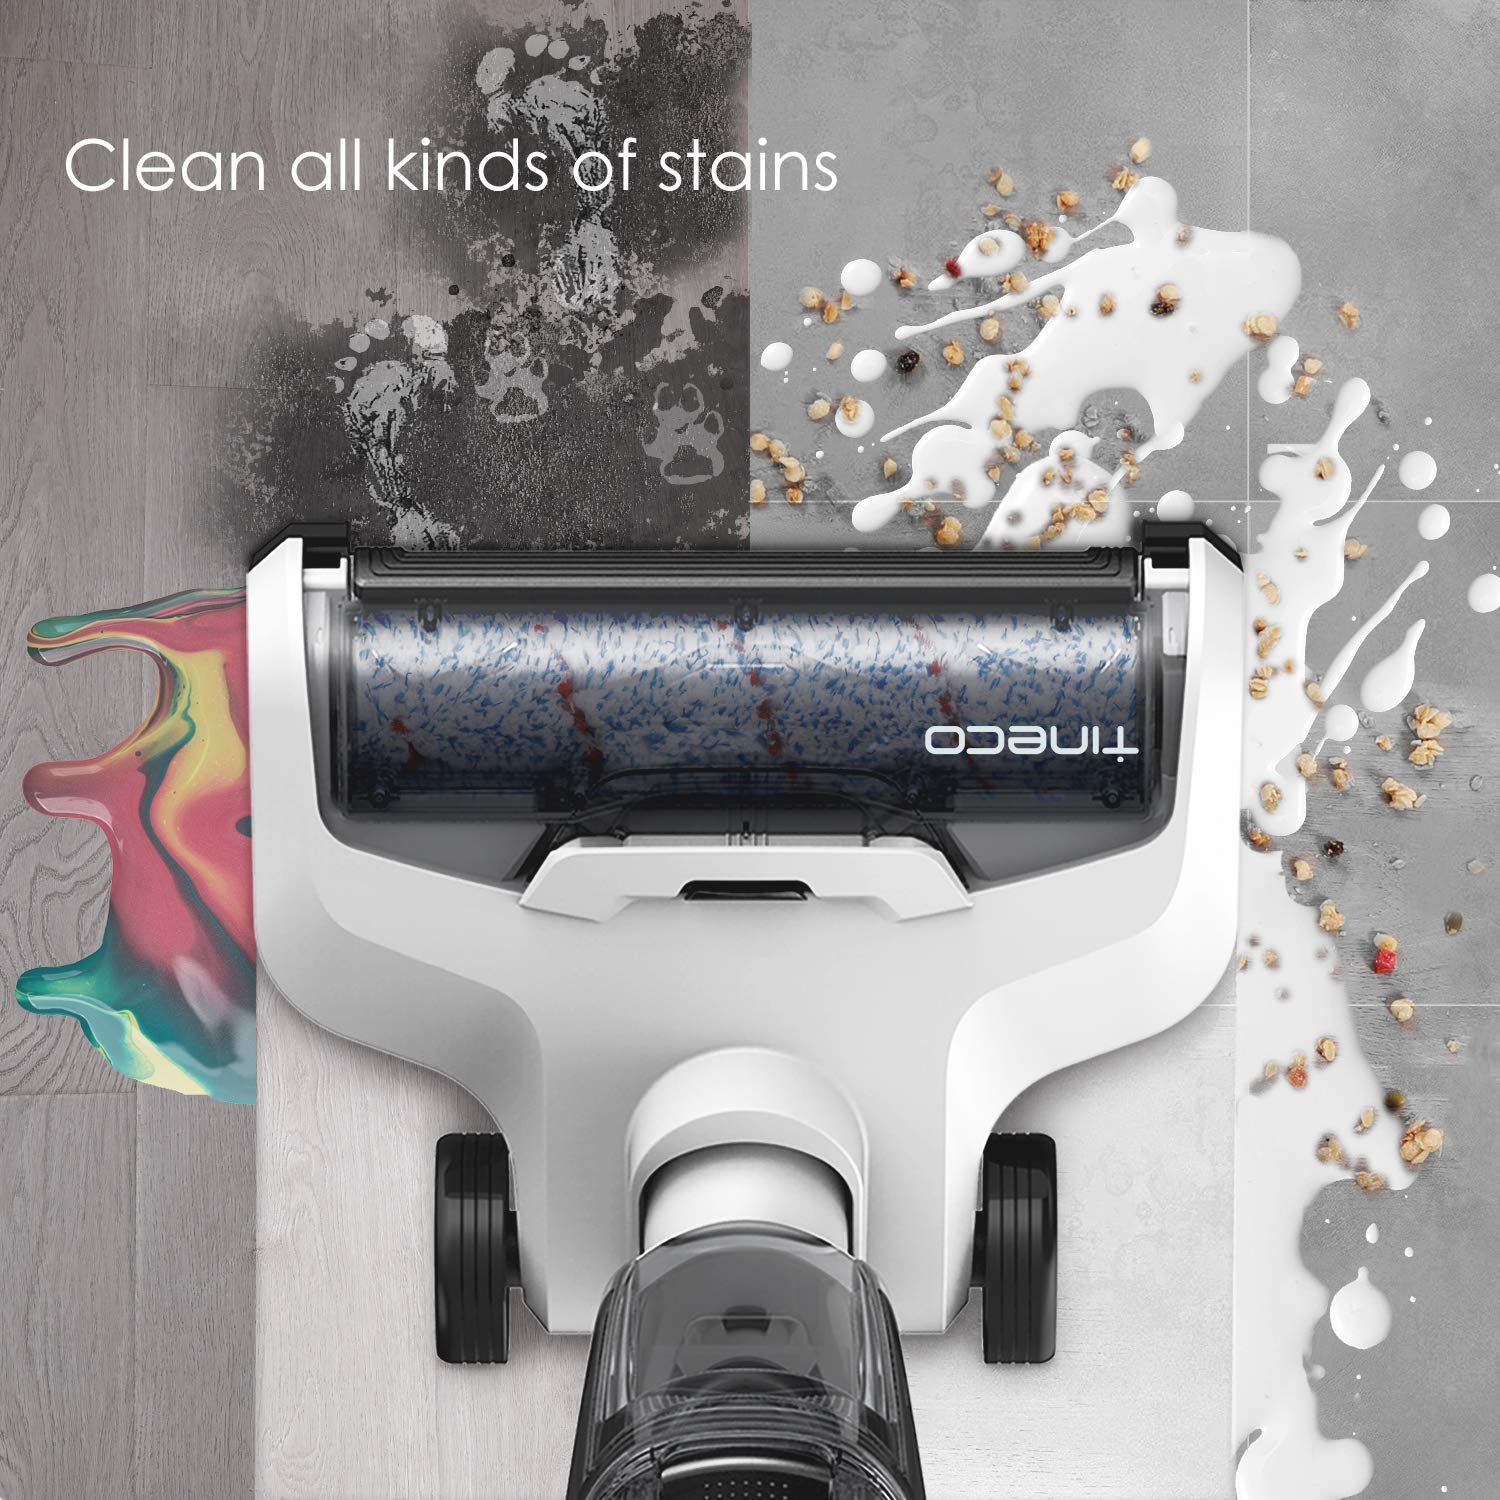 Tineco iFloor Cordless Wet Dry Vacuum Cleaner Powerful and Lightweight Hard Floor Washer with Self-Cleaning Brush by Tineco (Image #3)